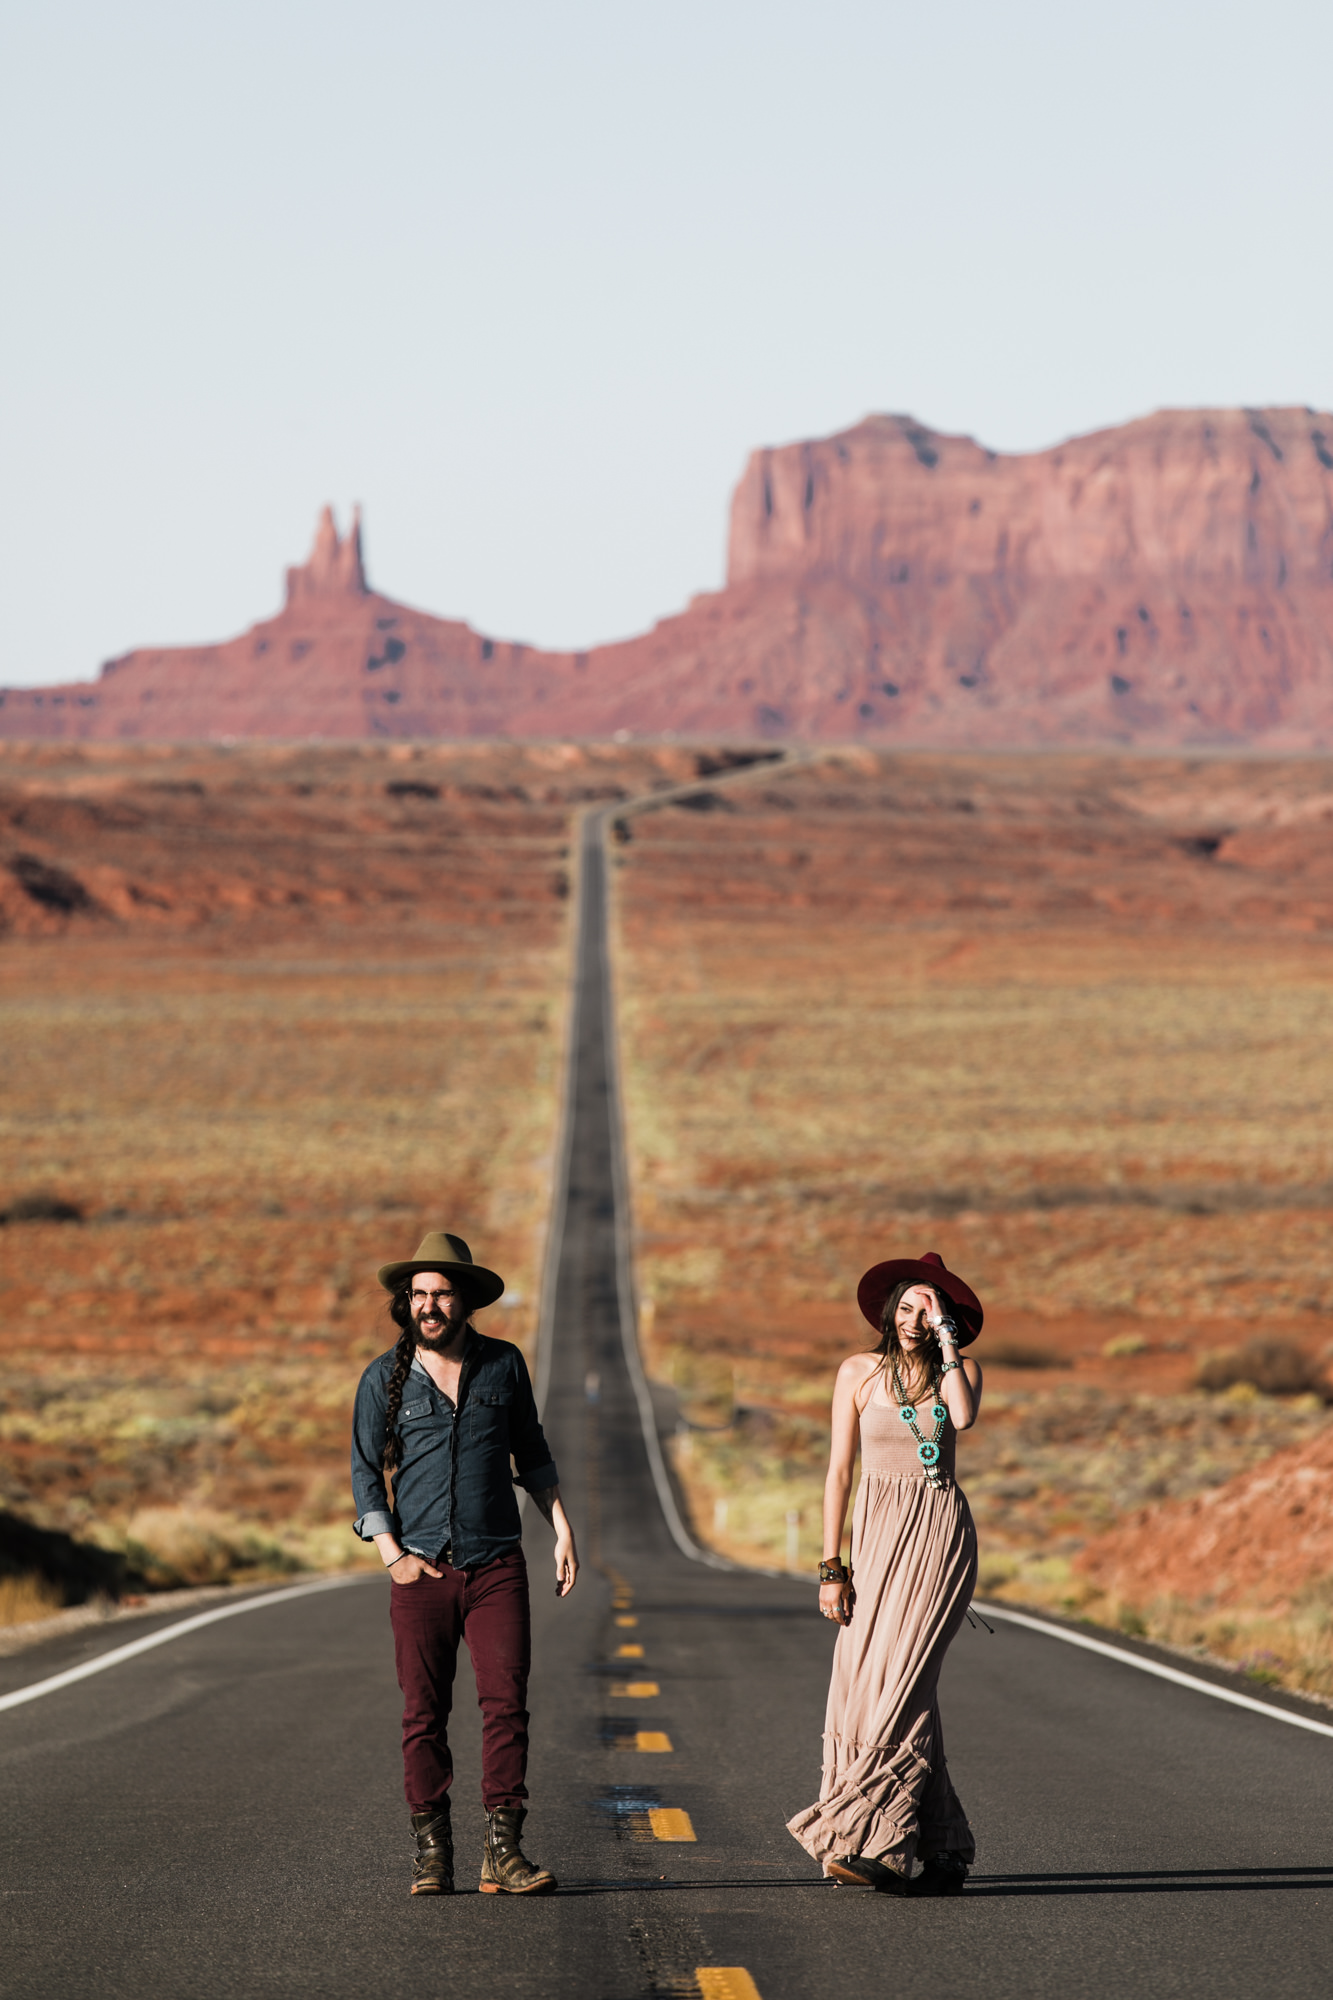 rachel + ryan's western stylish engagement session in monument valley | desert elopement inspiration | boho southwestern style | the hearnes adventure photography